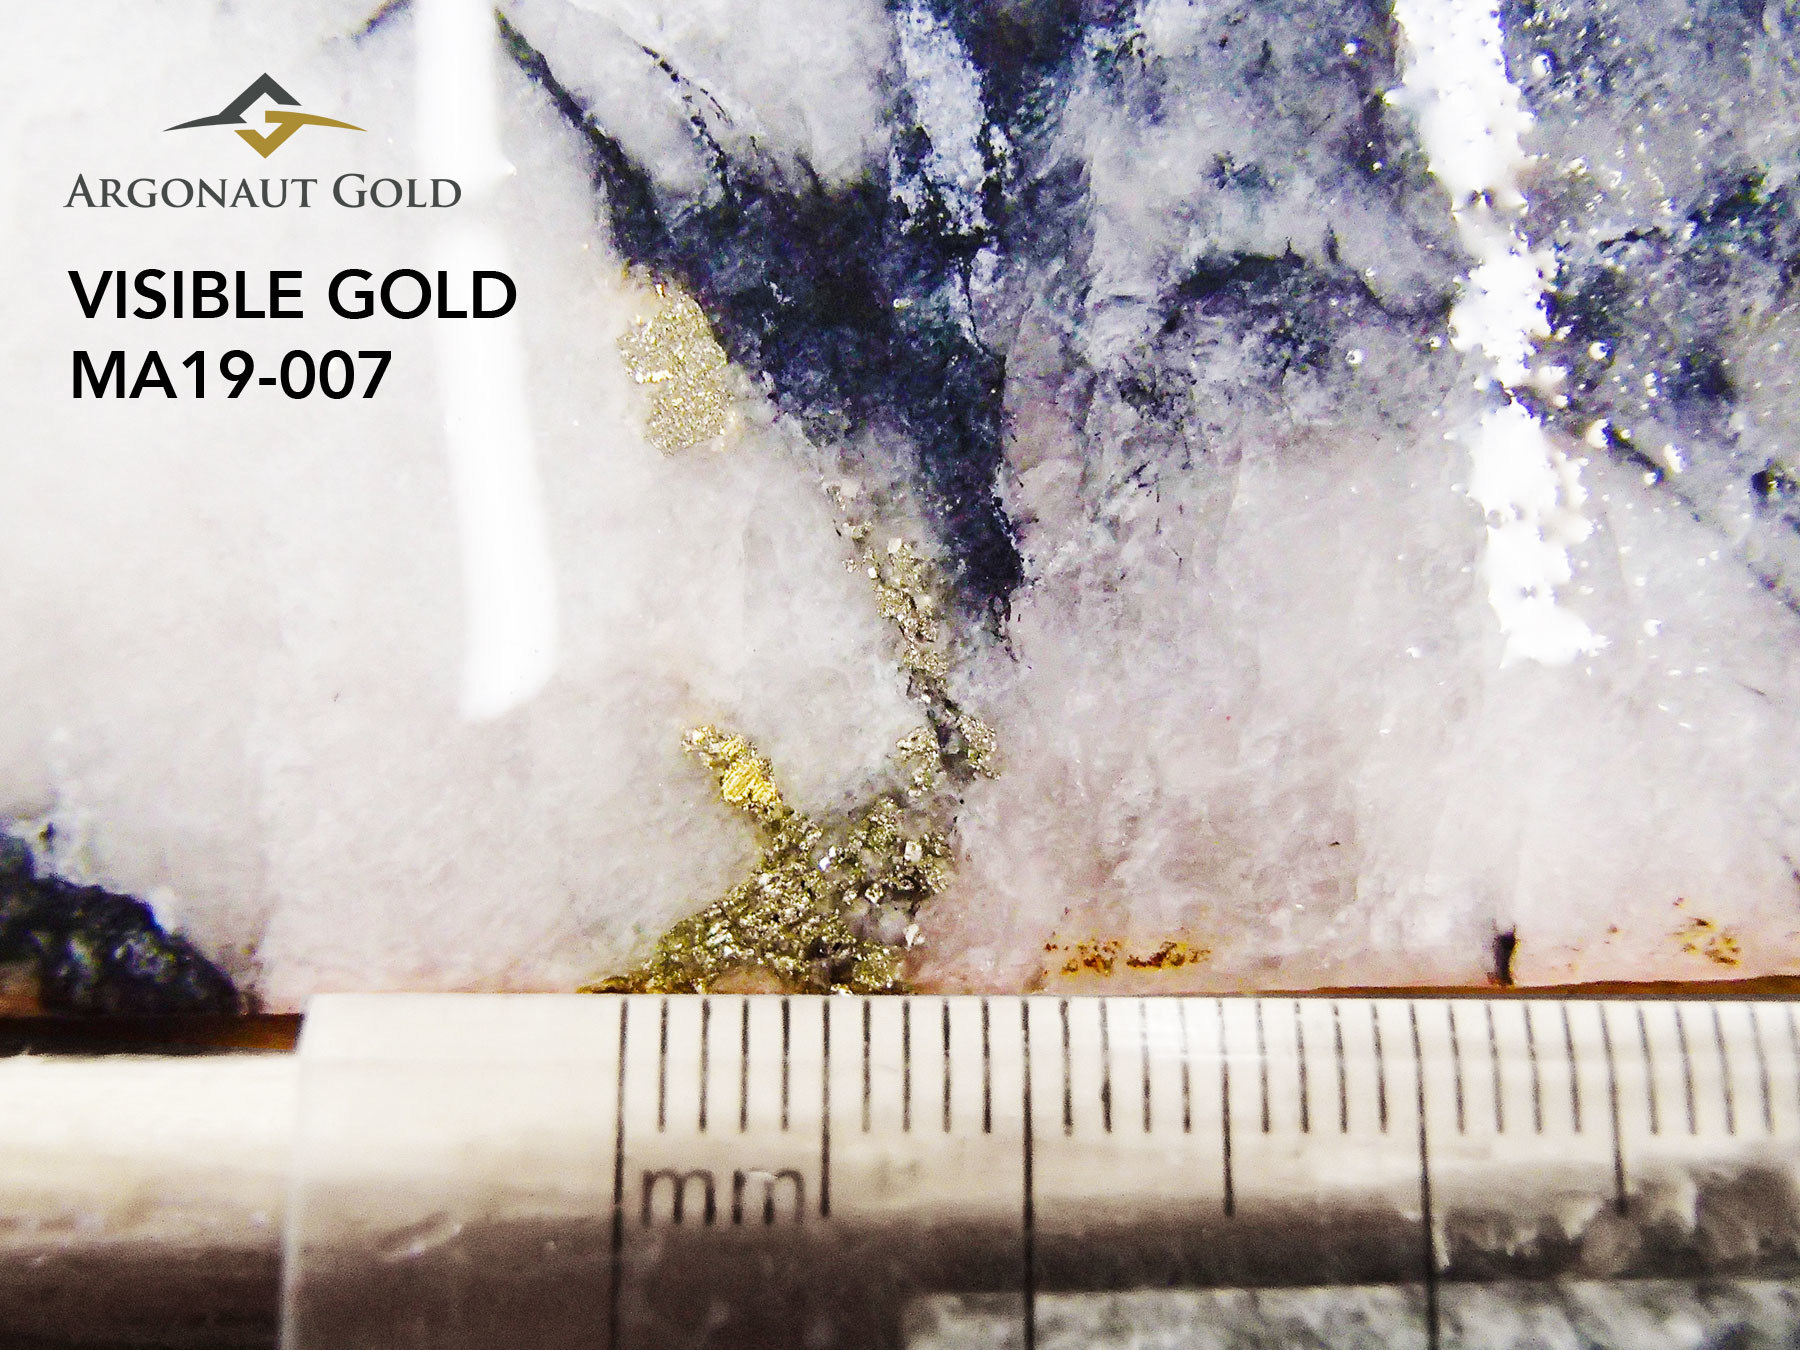 Figure 8: Visible Gold shown on drillhole MA19-007 (CNW Group/Argonaut Gold Inc.)